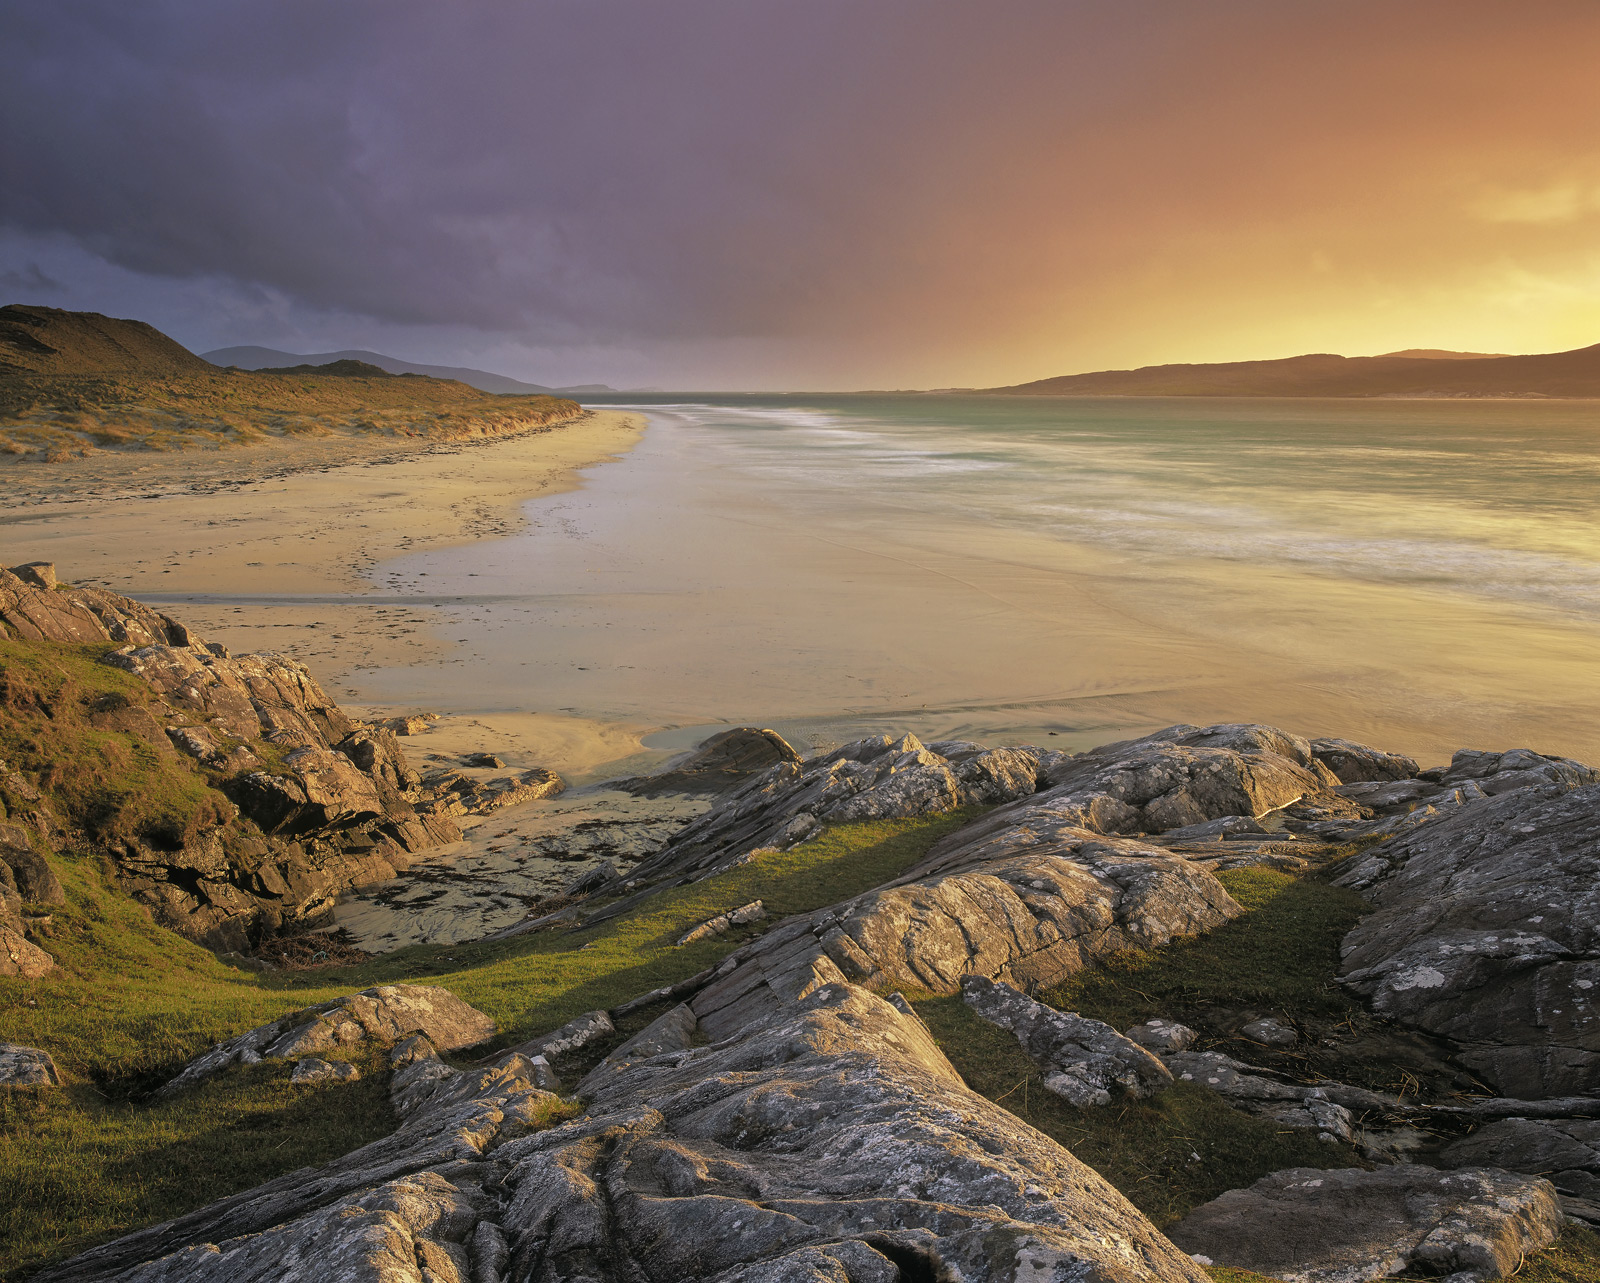 I had made firm plans in my mind to try and capture a transient sunset over the island of Taransay off the coast of Traigh Rosamol...